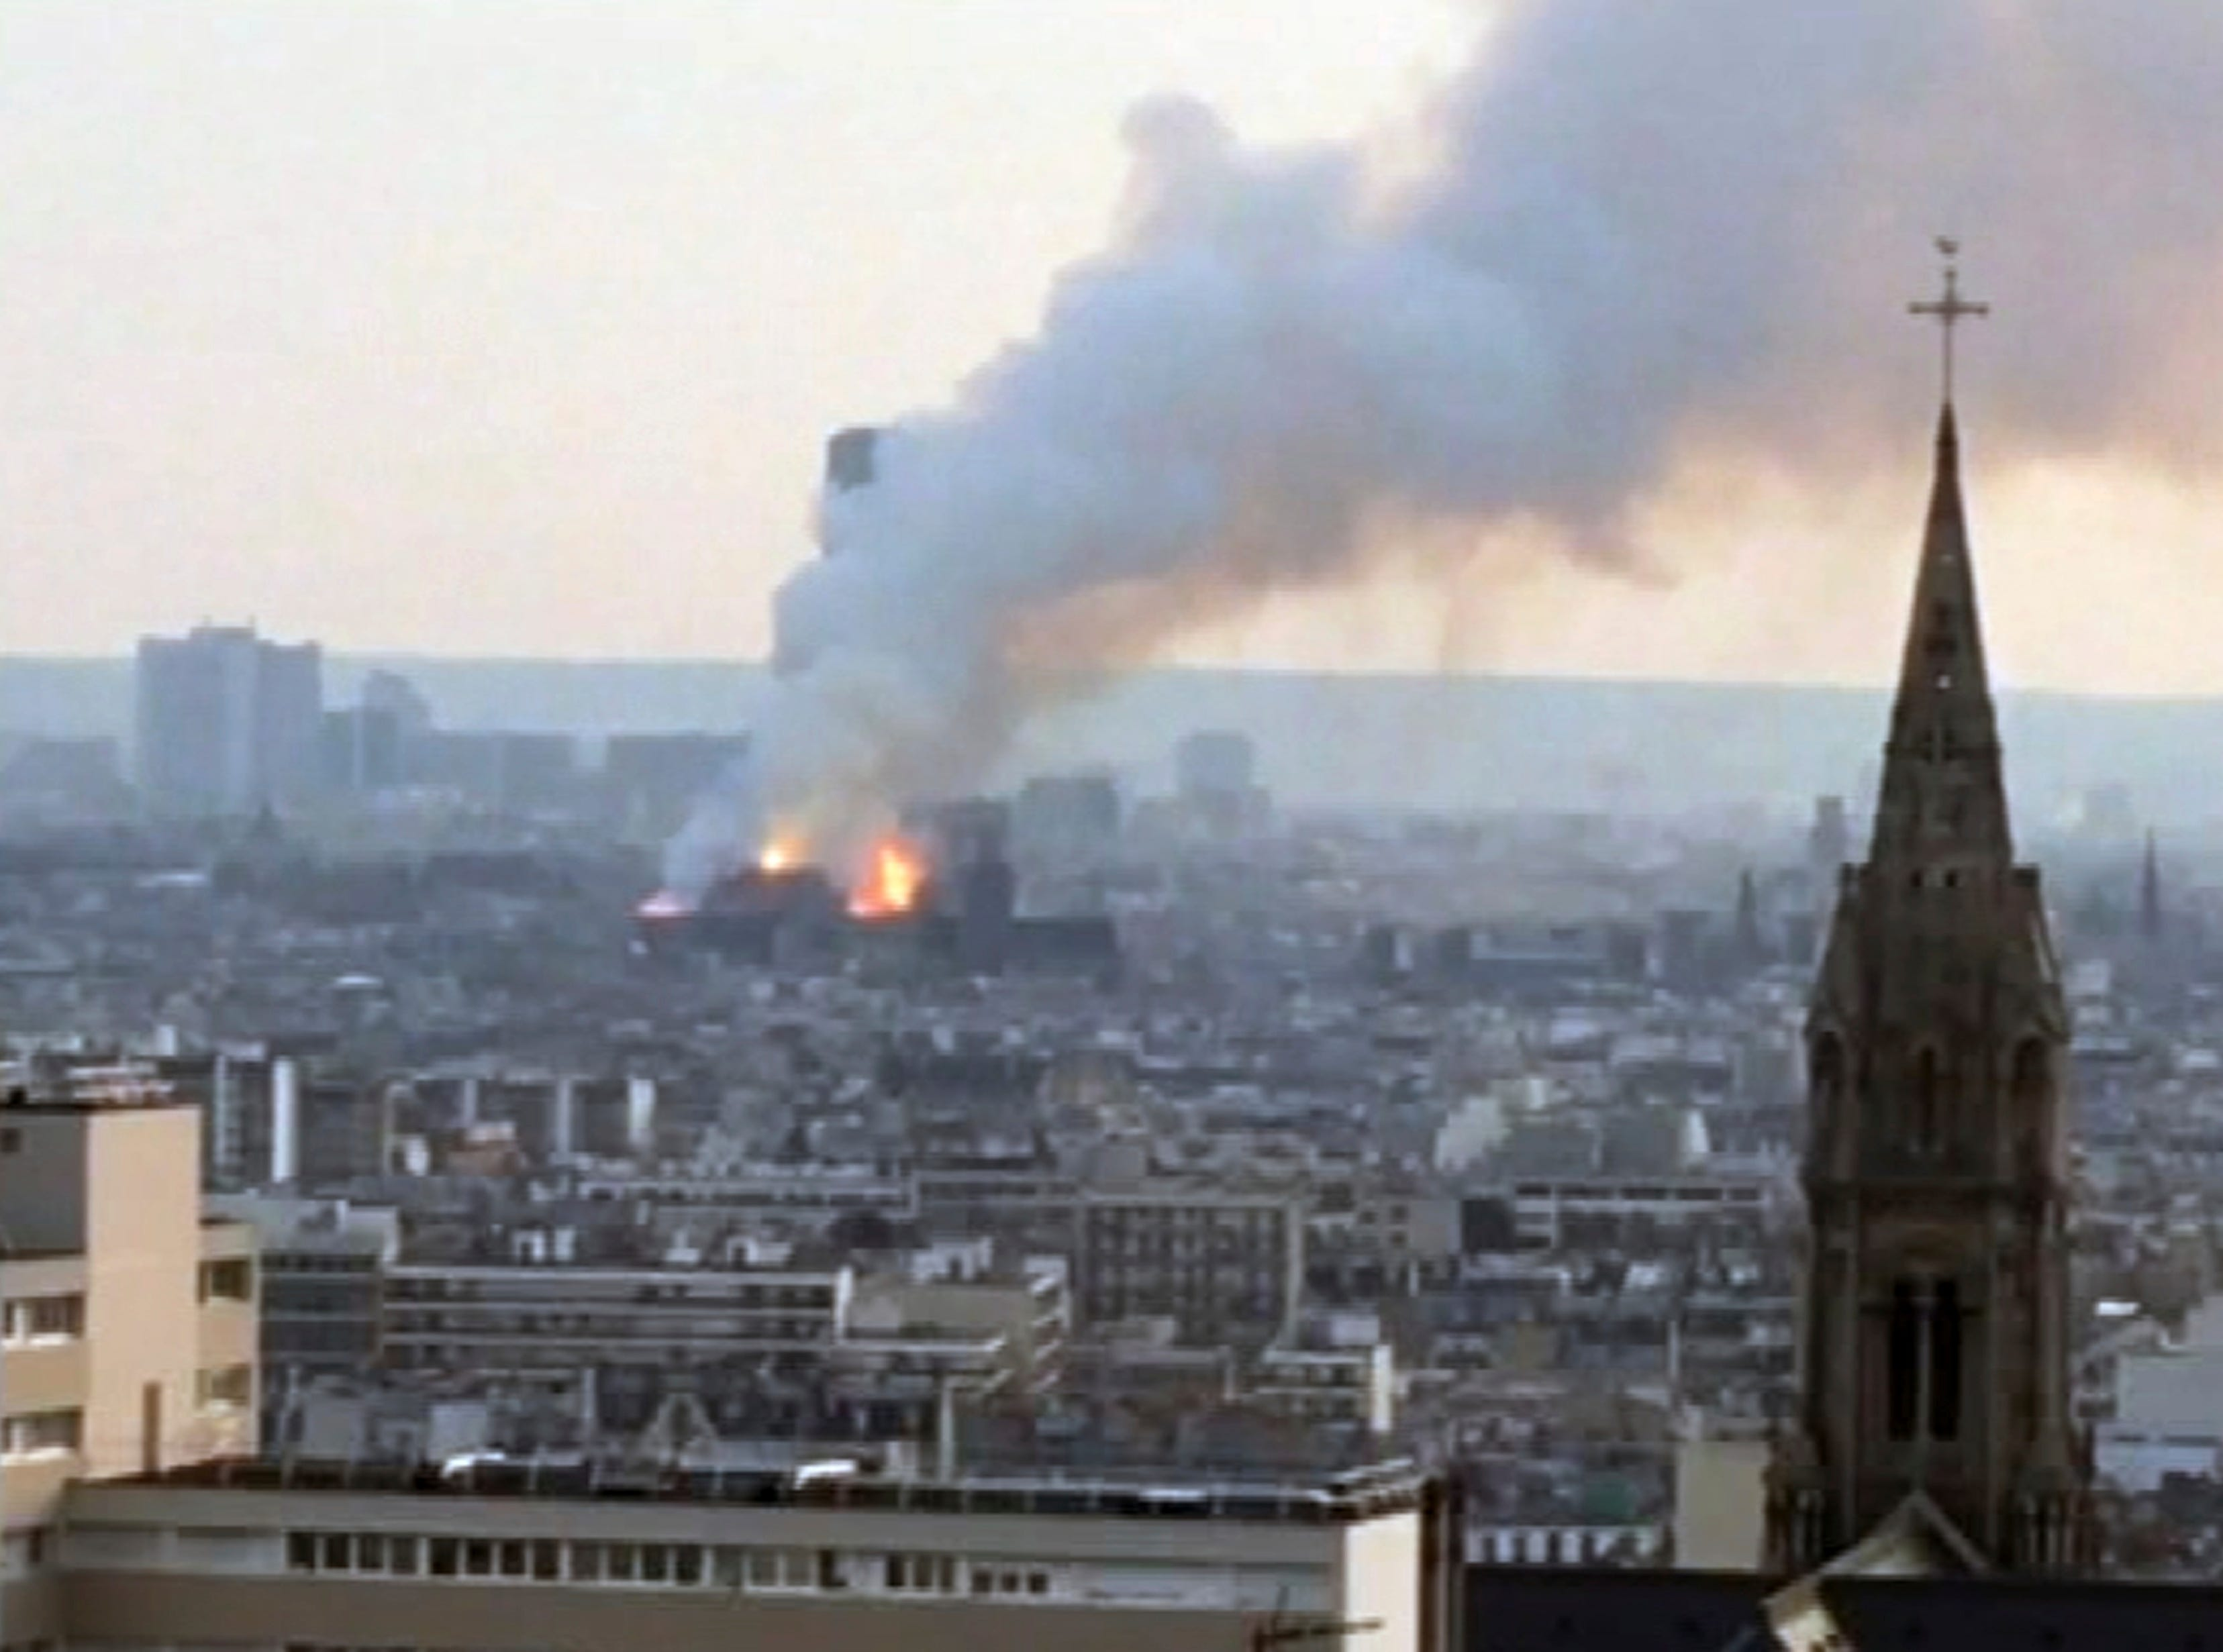 Plumes of smoke rises from Notre Dame cathedral burning in Paris, Monday, April 15, 2019.  Massive plumes of smoke fills the air above Notre Dame Cathedral and ash is reported to be falling on tourists and others around the island that marks the center of Paris. (AP Photo)